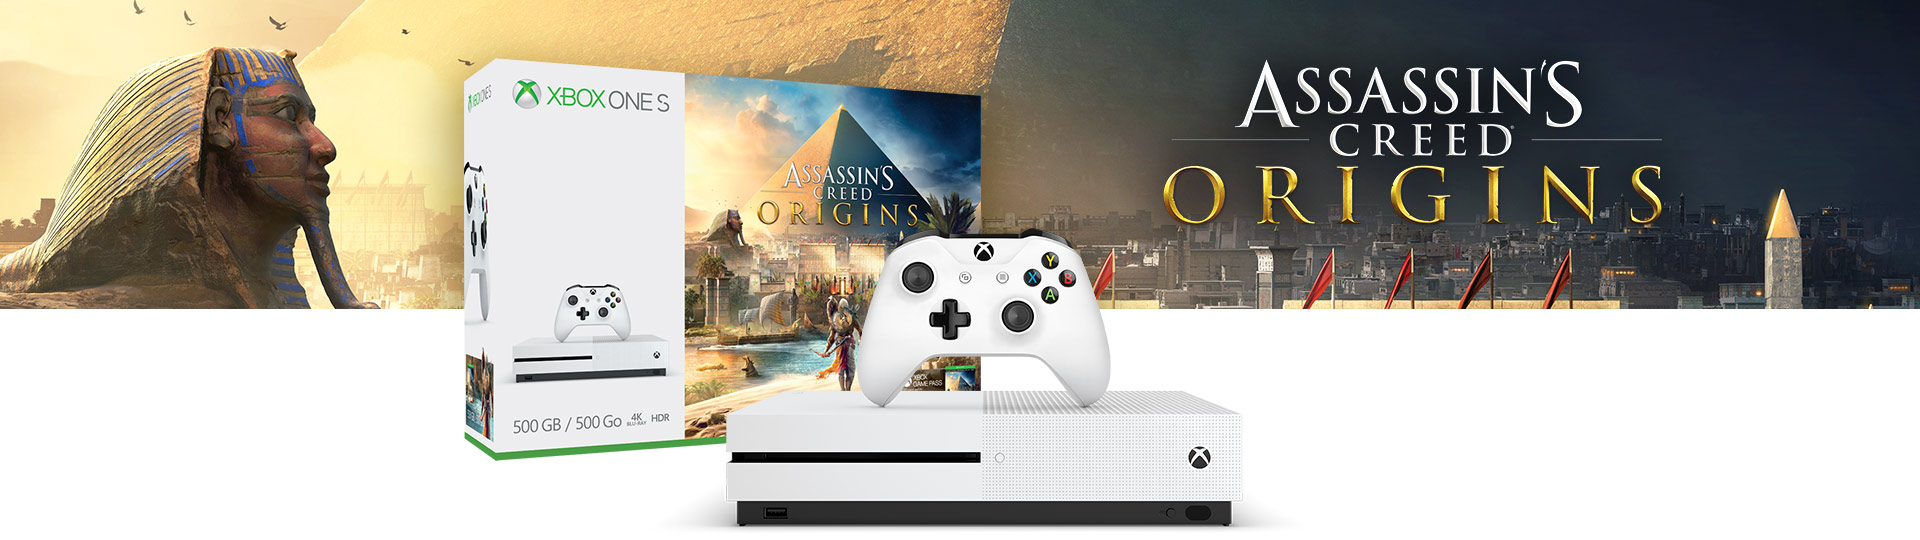 Sada Xbox One S Assassin's Creed: Origins (500 GB)